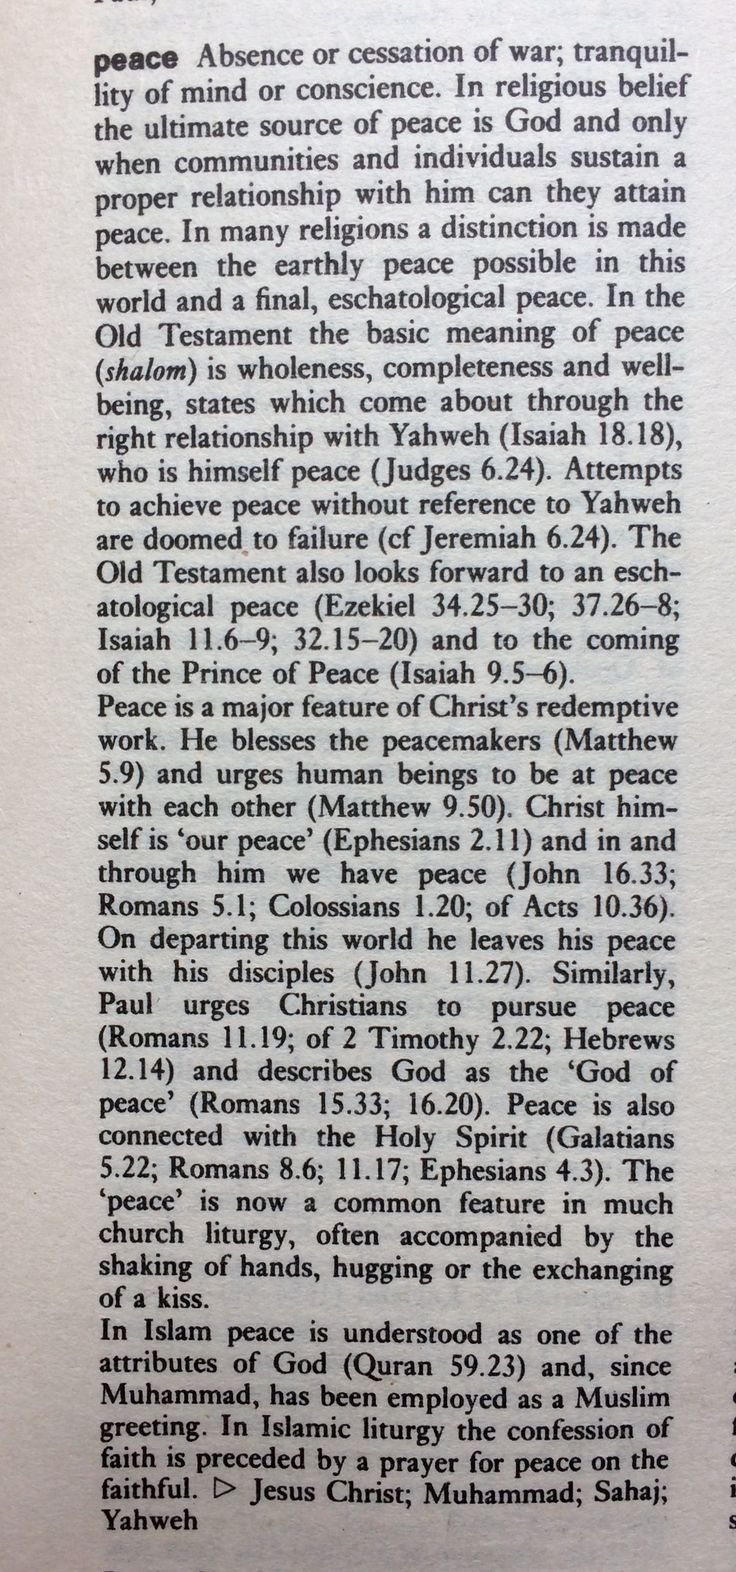 Reference: The Wordsworth Dictionary of Believes and Religions. A comprehensive guide to world-wide faiths, 1995, p. 397.